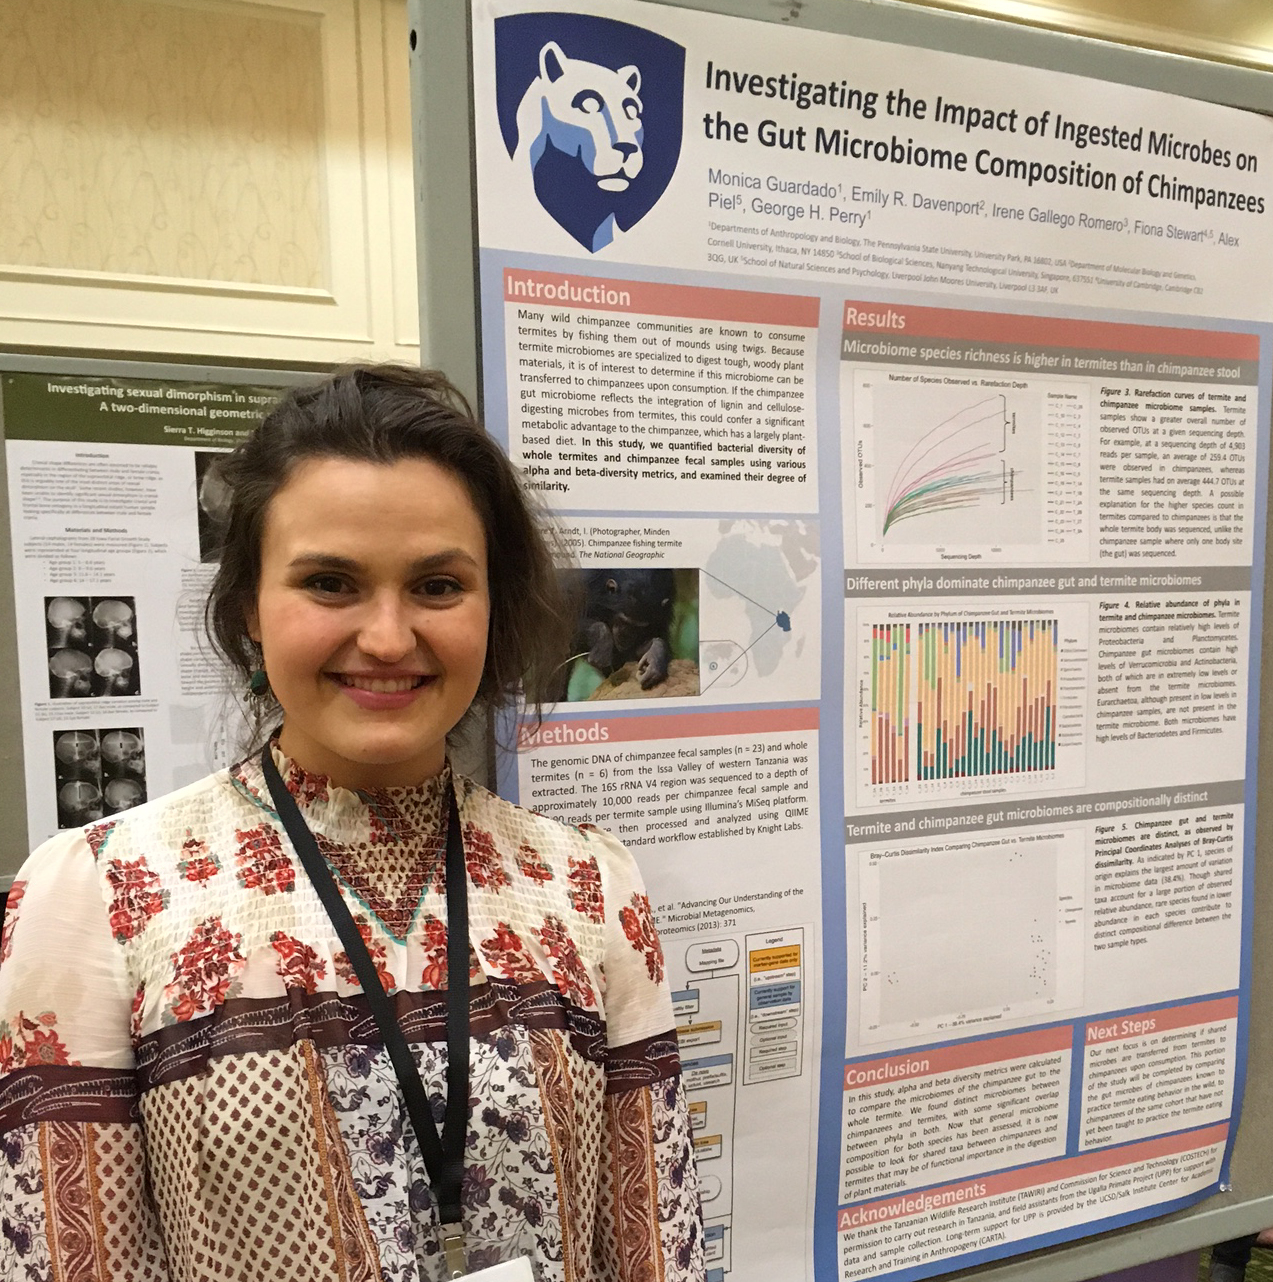 Undergraduate student Monica Guardado presenting her poster at the 2017 AAPA meeting in New Orleans.